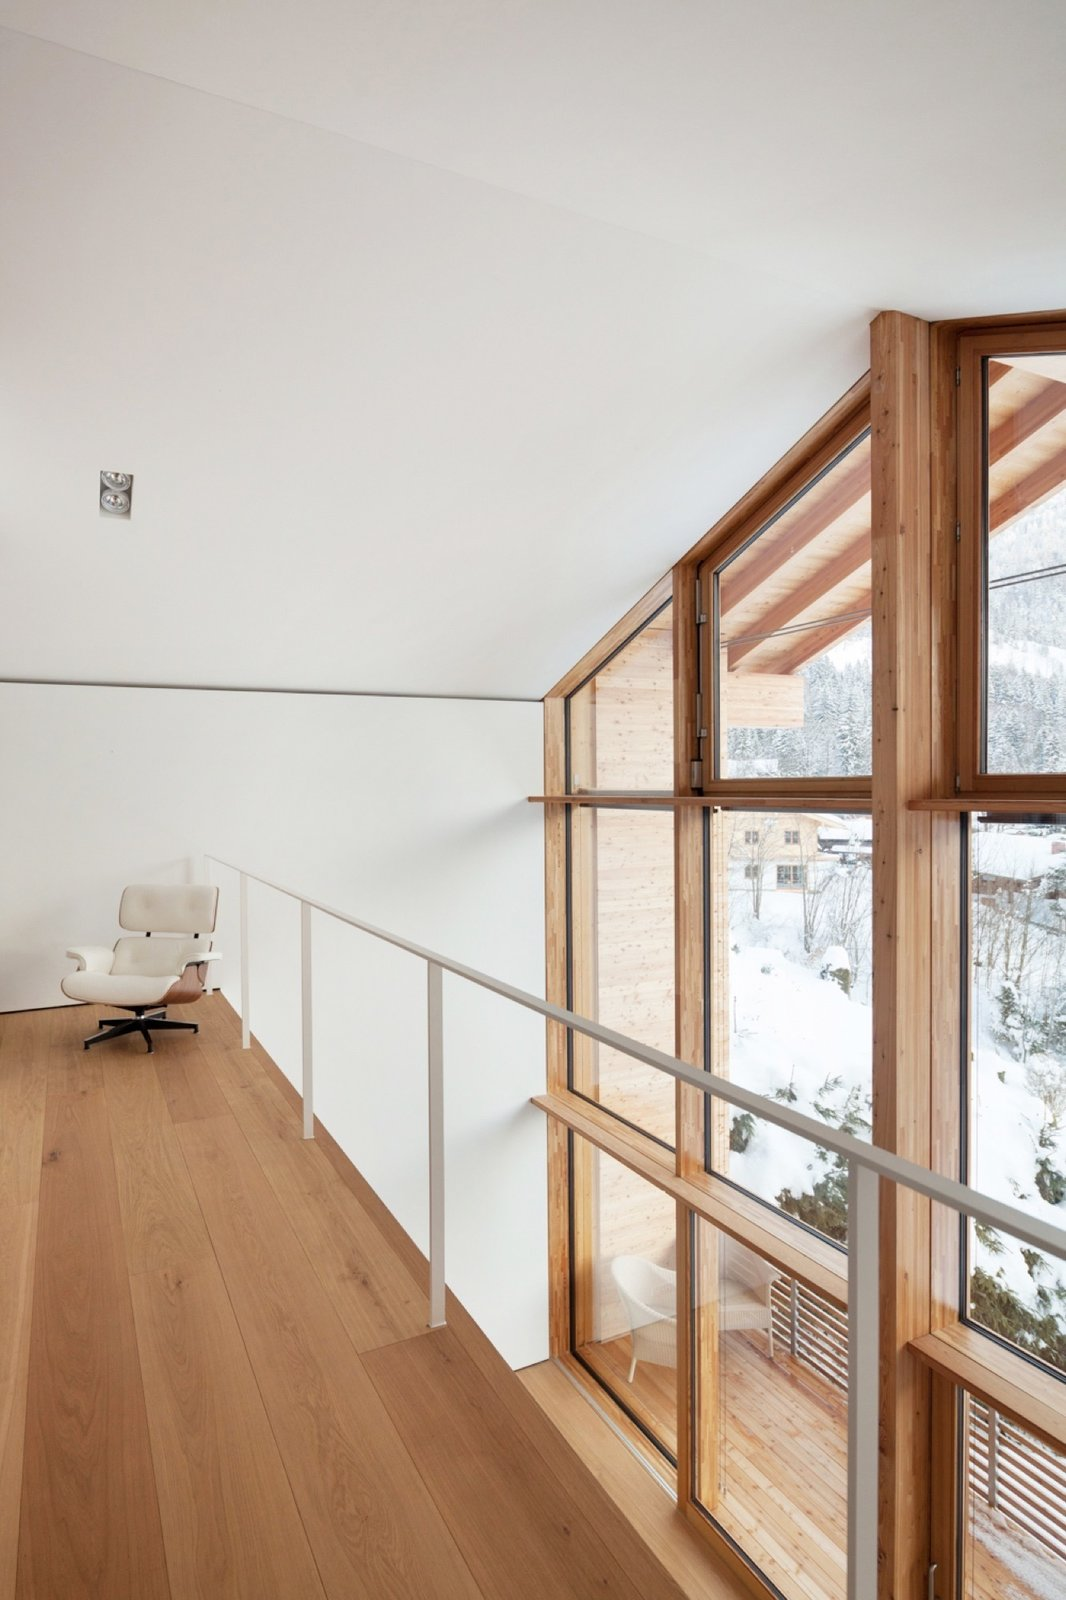 German architecture firm Beer Bembé Dellinger designed this vacation getaway in Bayrischzell, Bavaria, for a couple from Munich.   Photo by Sebastian Schels  Haus Z2 in Bayrischzell by Alpine Modern